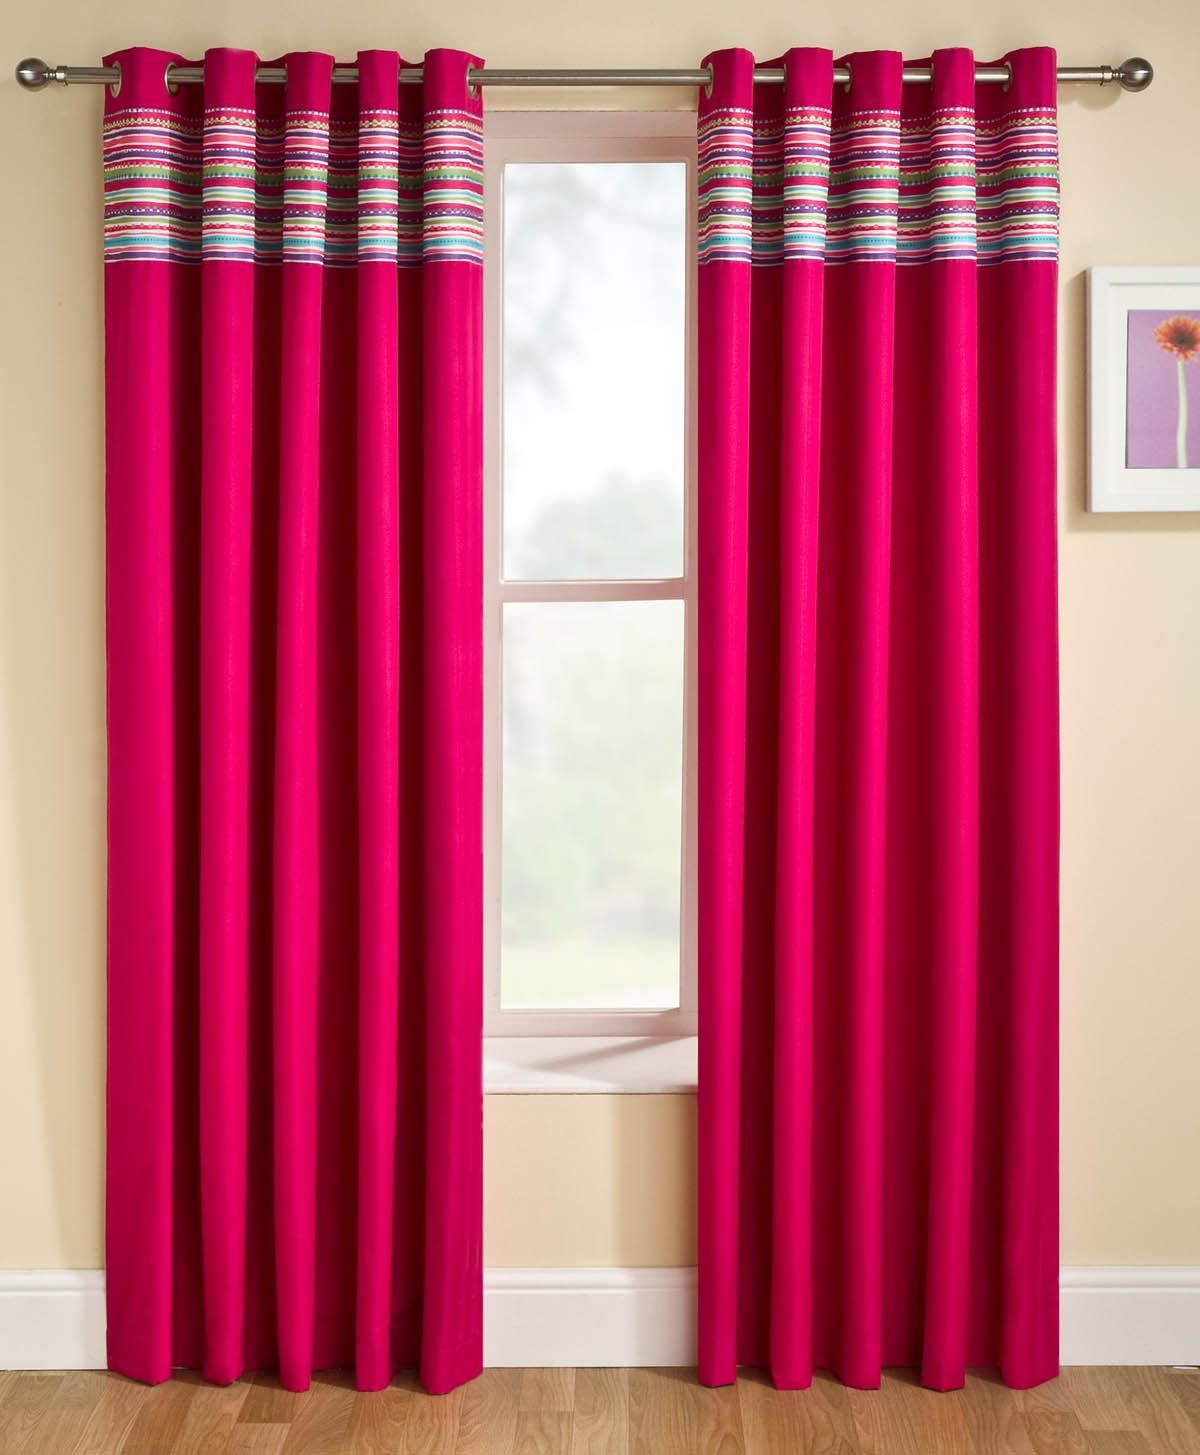 Ready Made Thermal Curtains Siesta Blockout Eyelet Ready Made Curtains Girls Bedroom Ideas